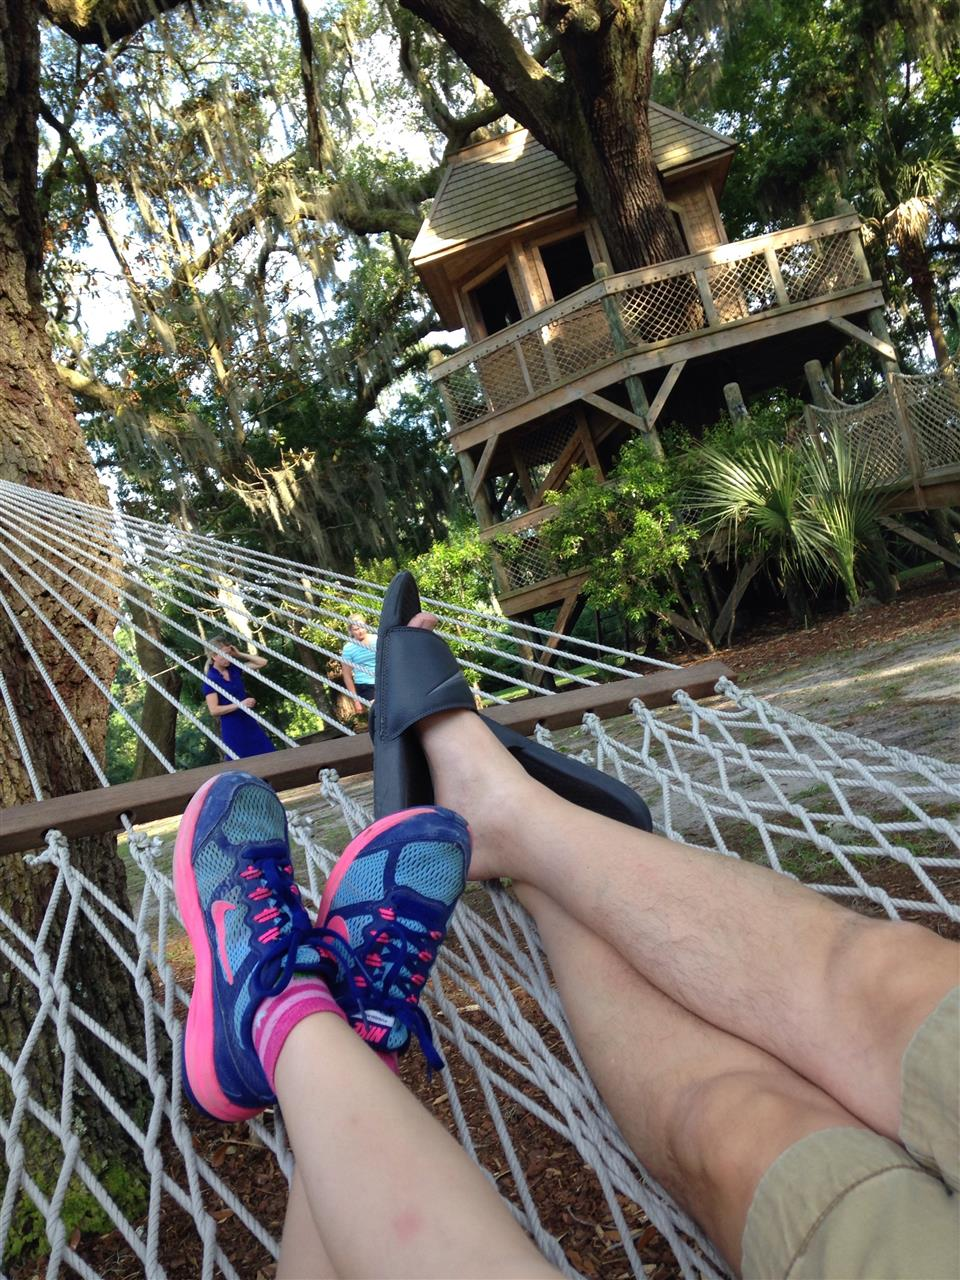 Palmetto Bluff Bluffton/HHI SC, Family laying in the hammock by the tree house